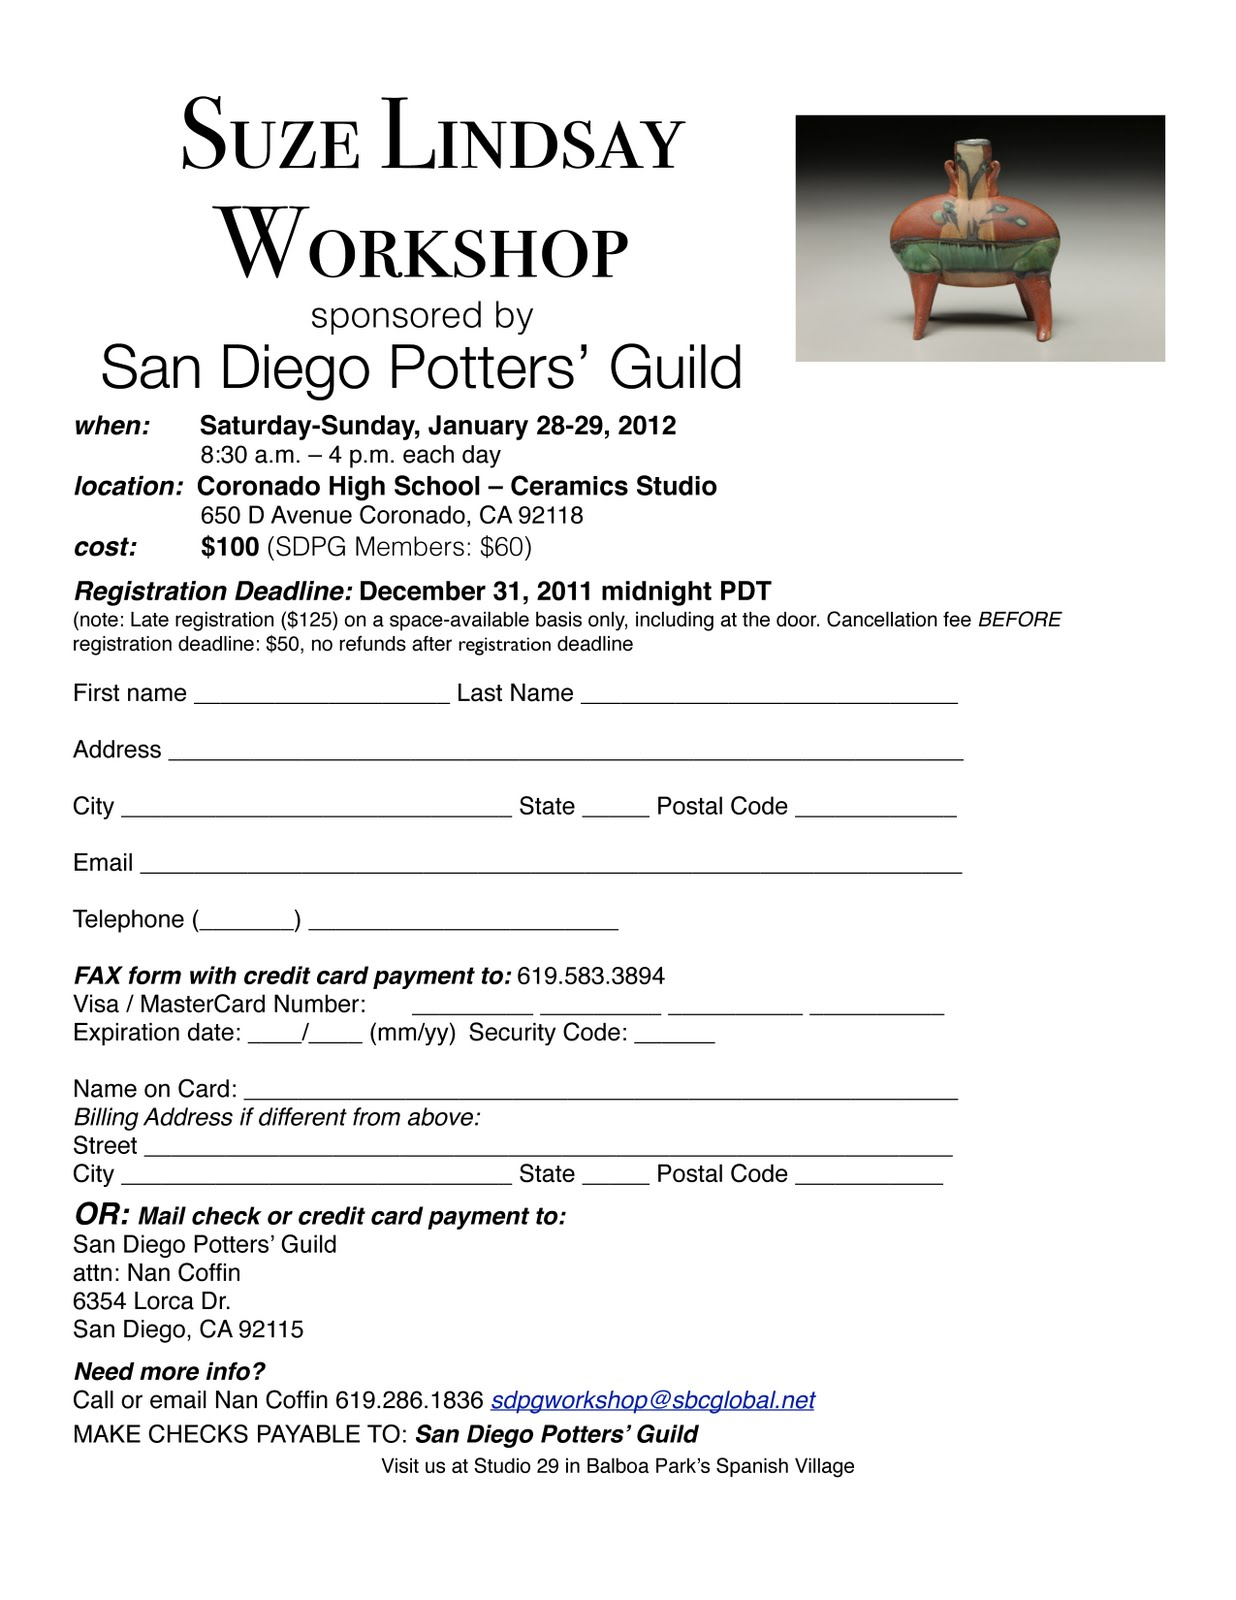 Upcoming workshops in san diego suze lindsay and bruce dehnert upcoming workshops in san diego suze lindsay and bruce dehnert maxwellsz